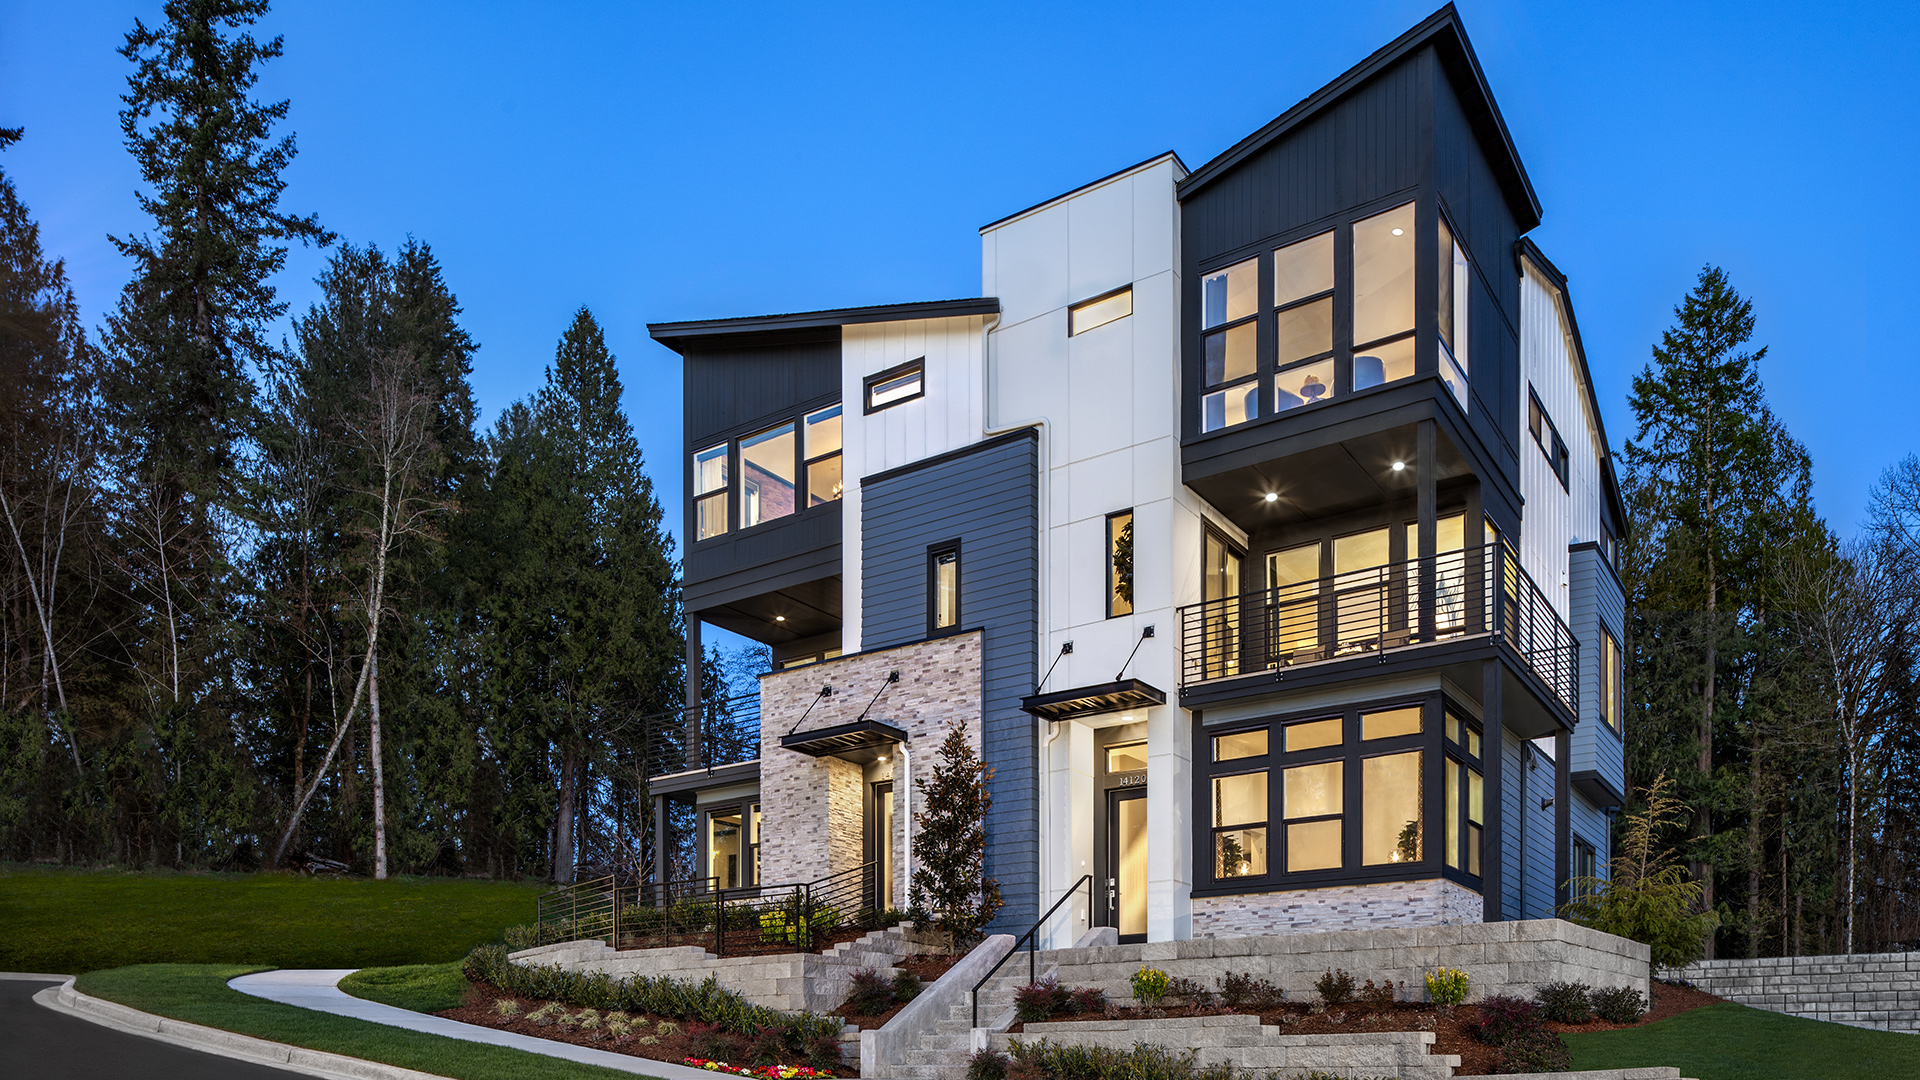 The contemporary Burke townhome features striking architectural details